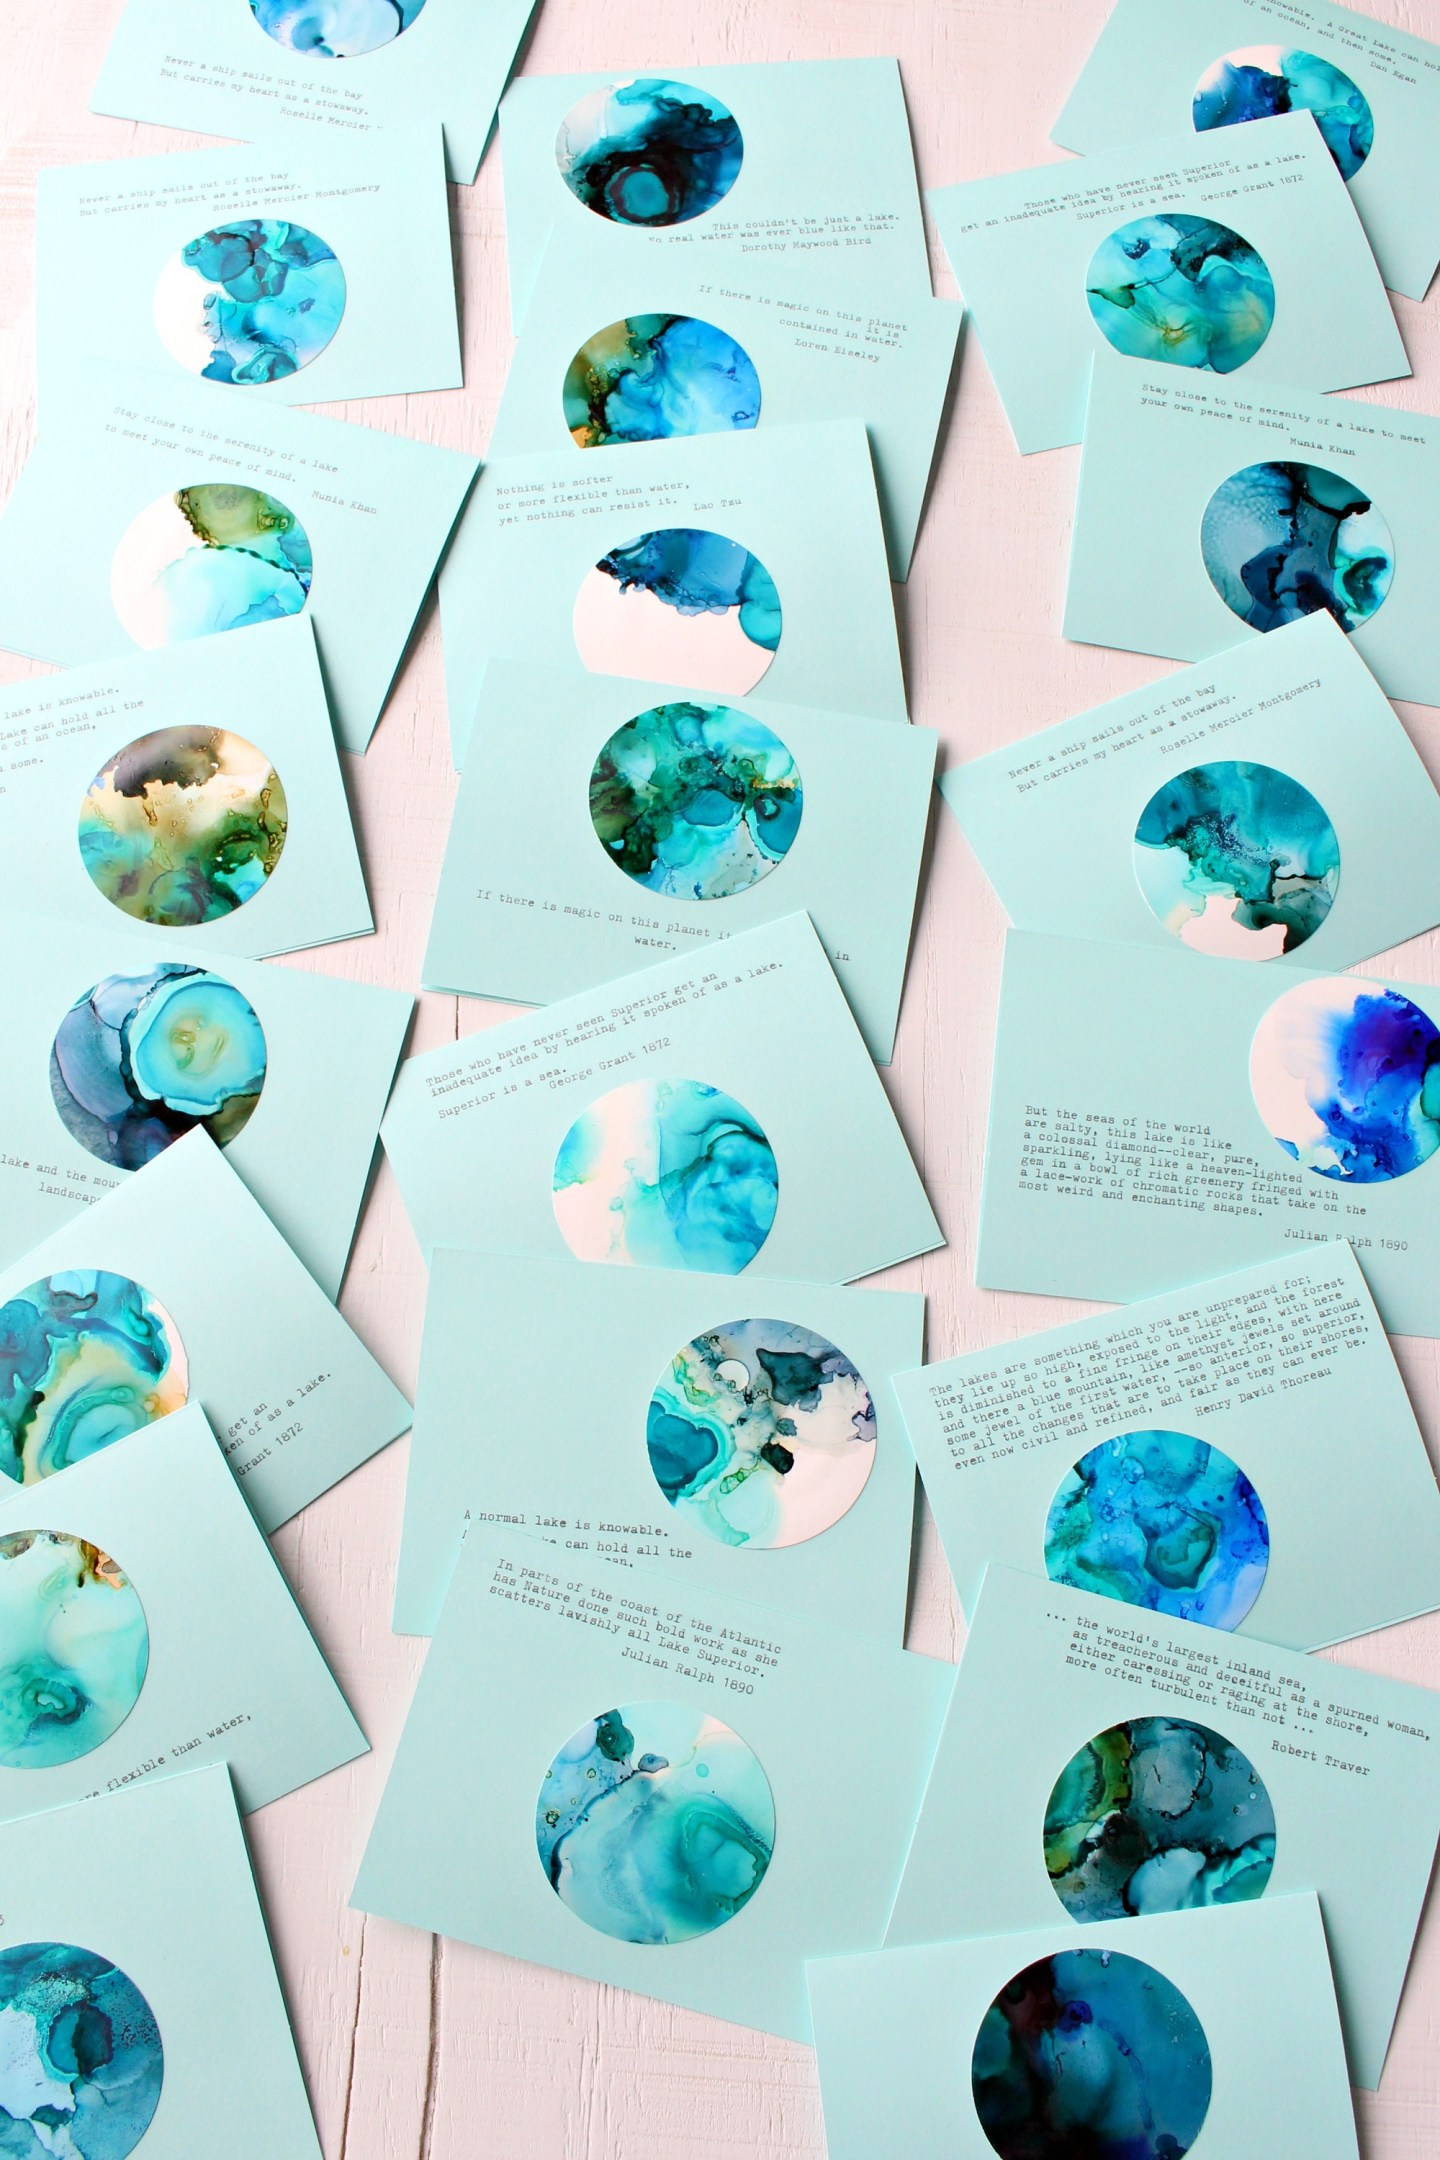 DIY Alcohol Ink Note Cards with Swirling Blues and Greens